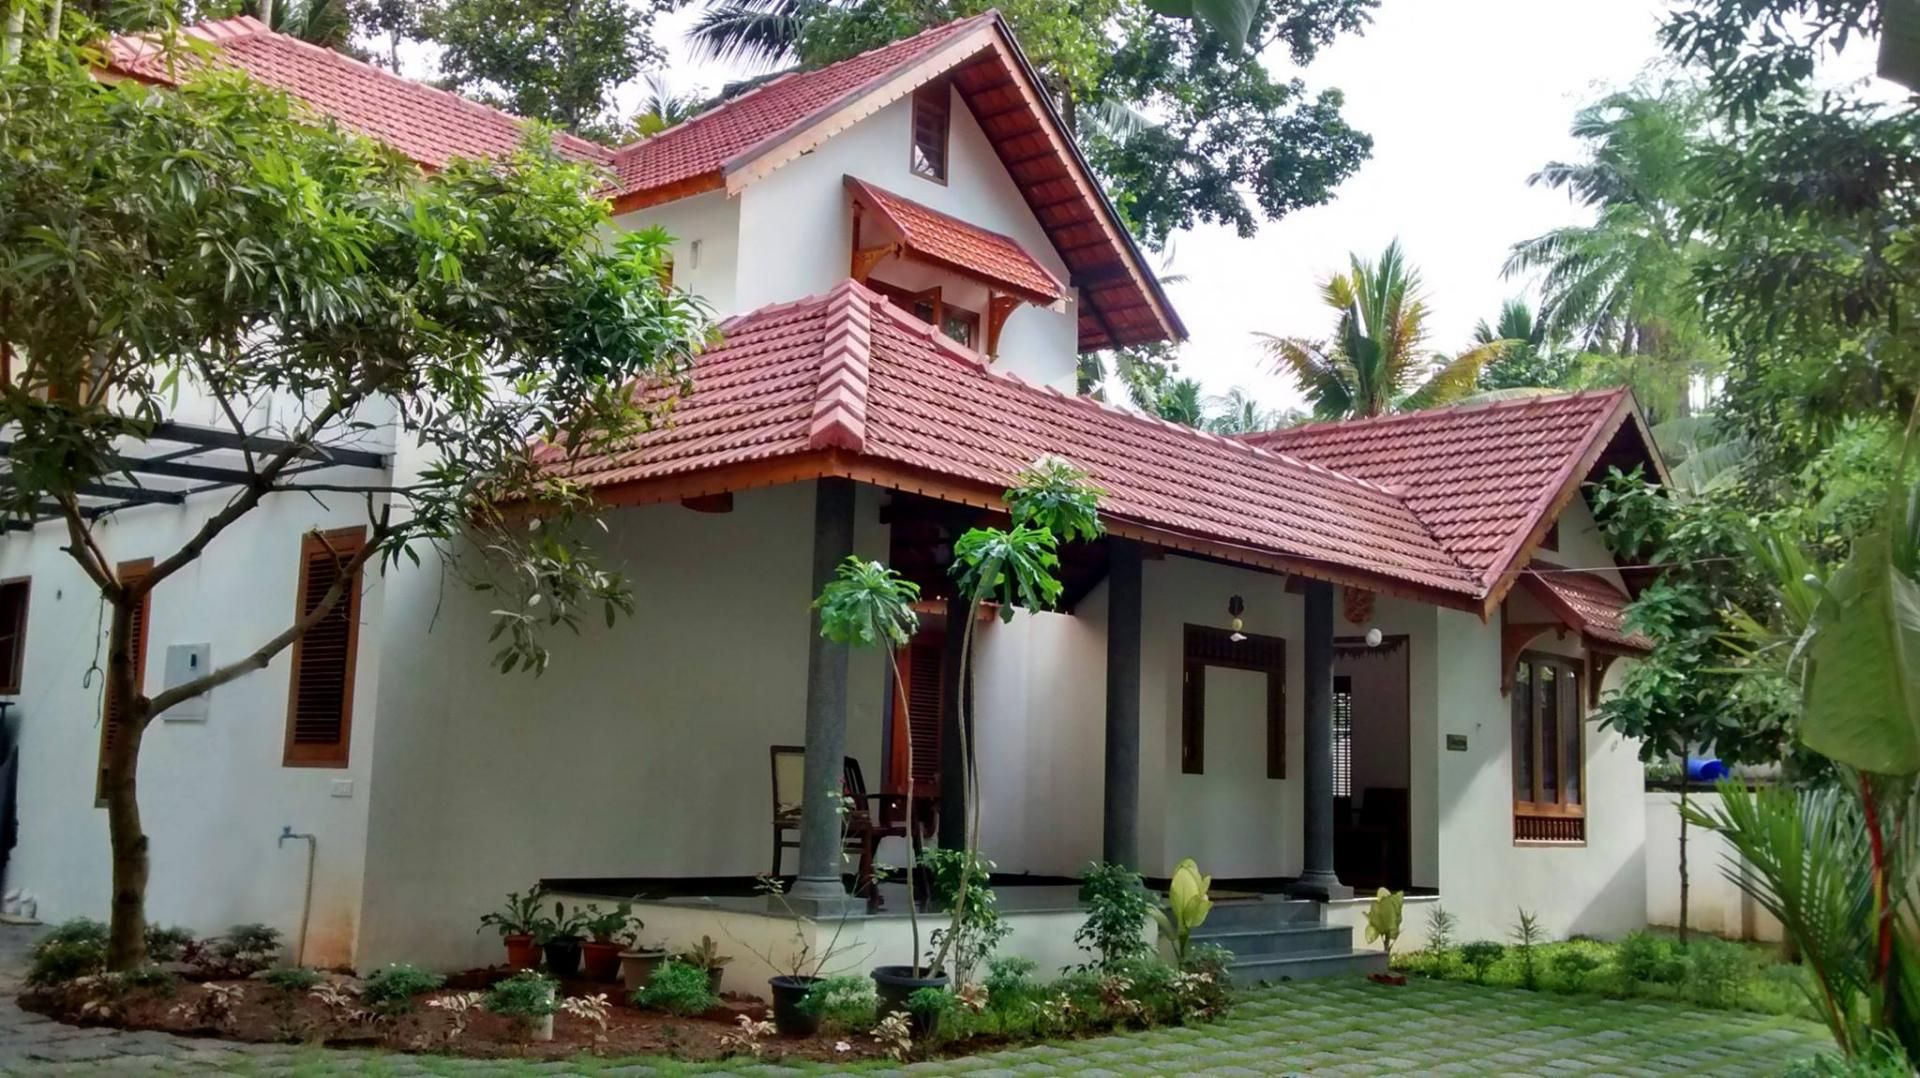 Residence For Jeena And Shiva Bhoomija Creations Archello Traditional Home Exteriors Farmhouse Style House Kerala House Design